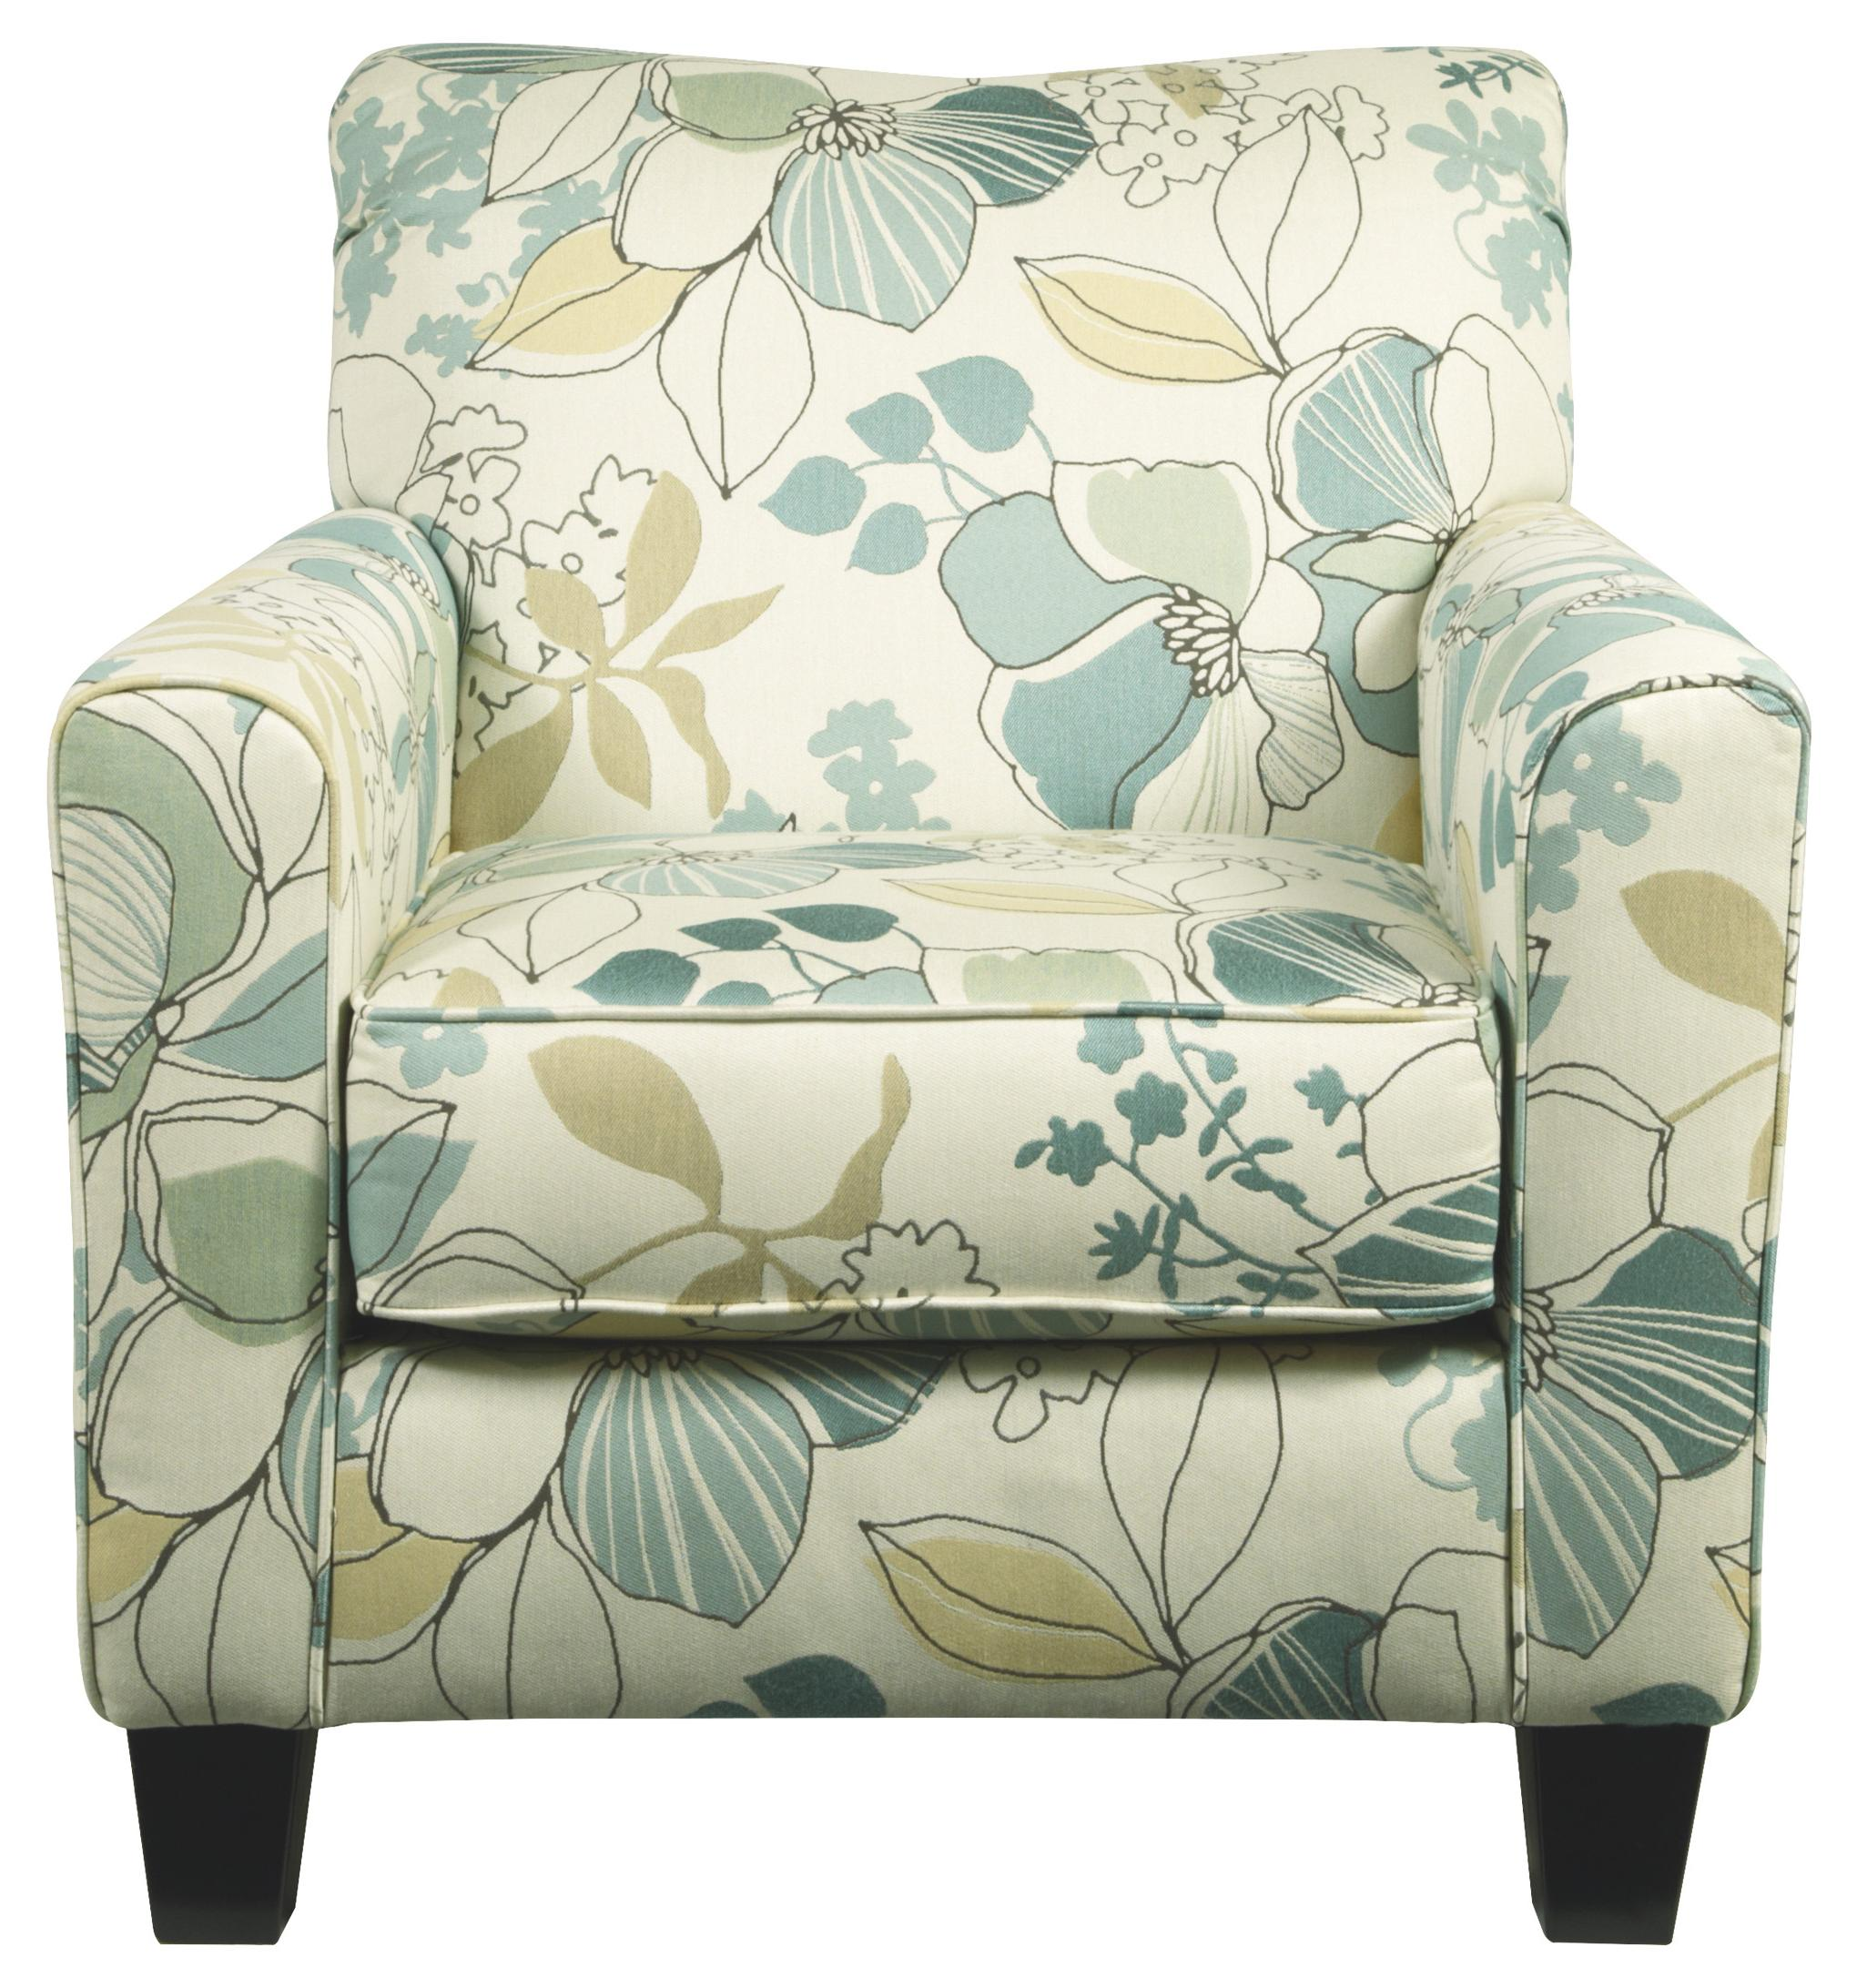 Signature Design by Ashley Daystar - Seafoam Accent Chair - Item Number: 2820021